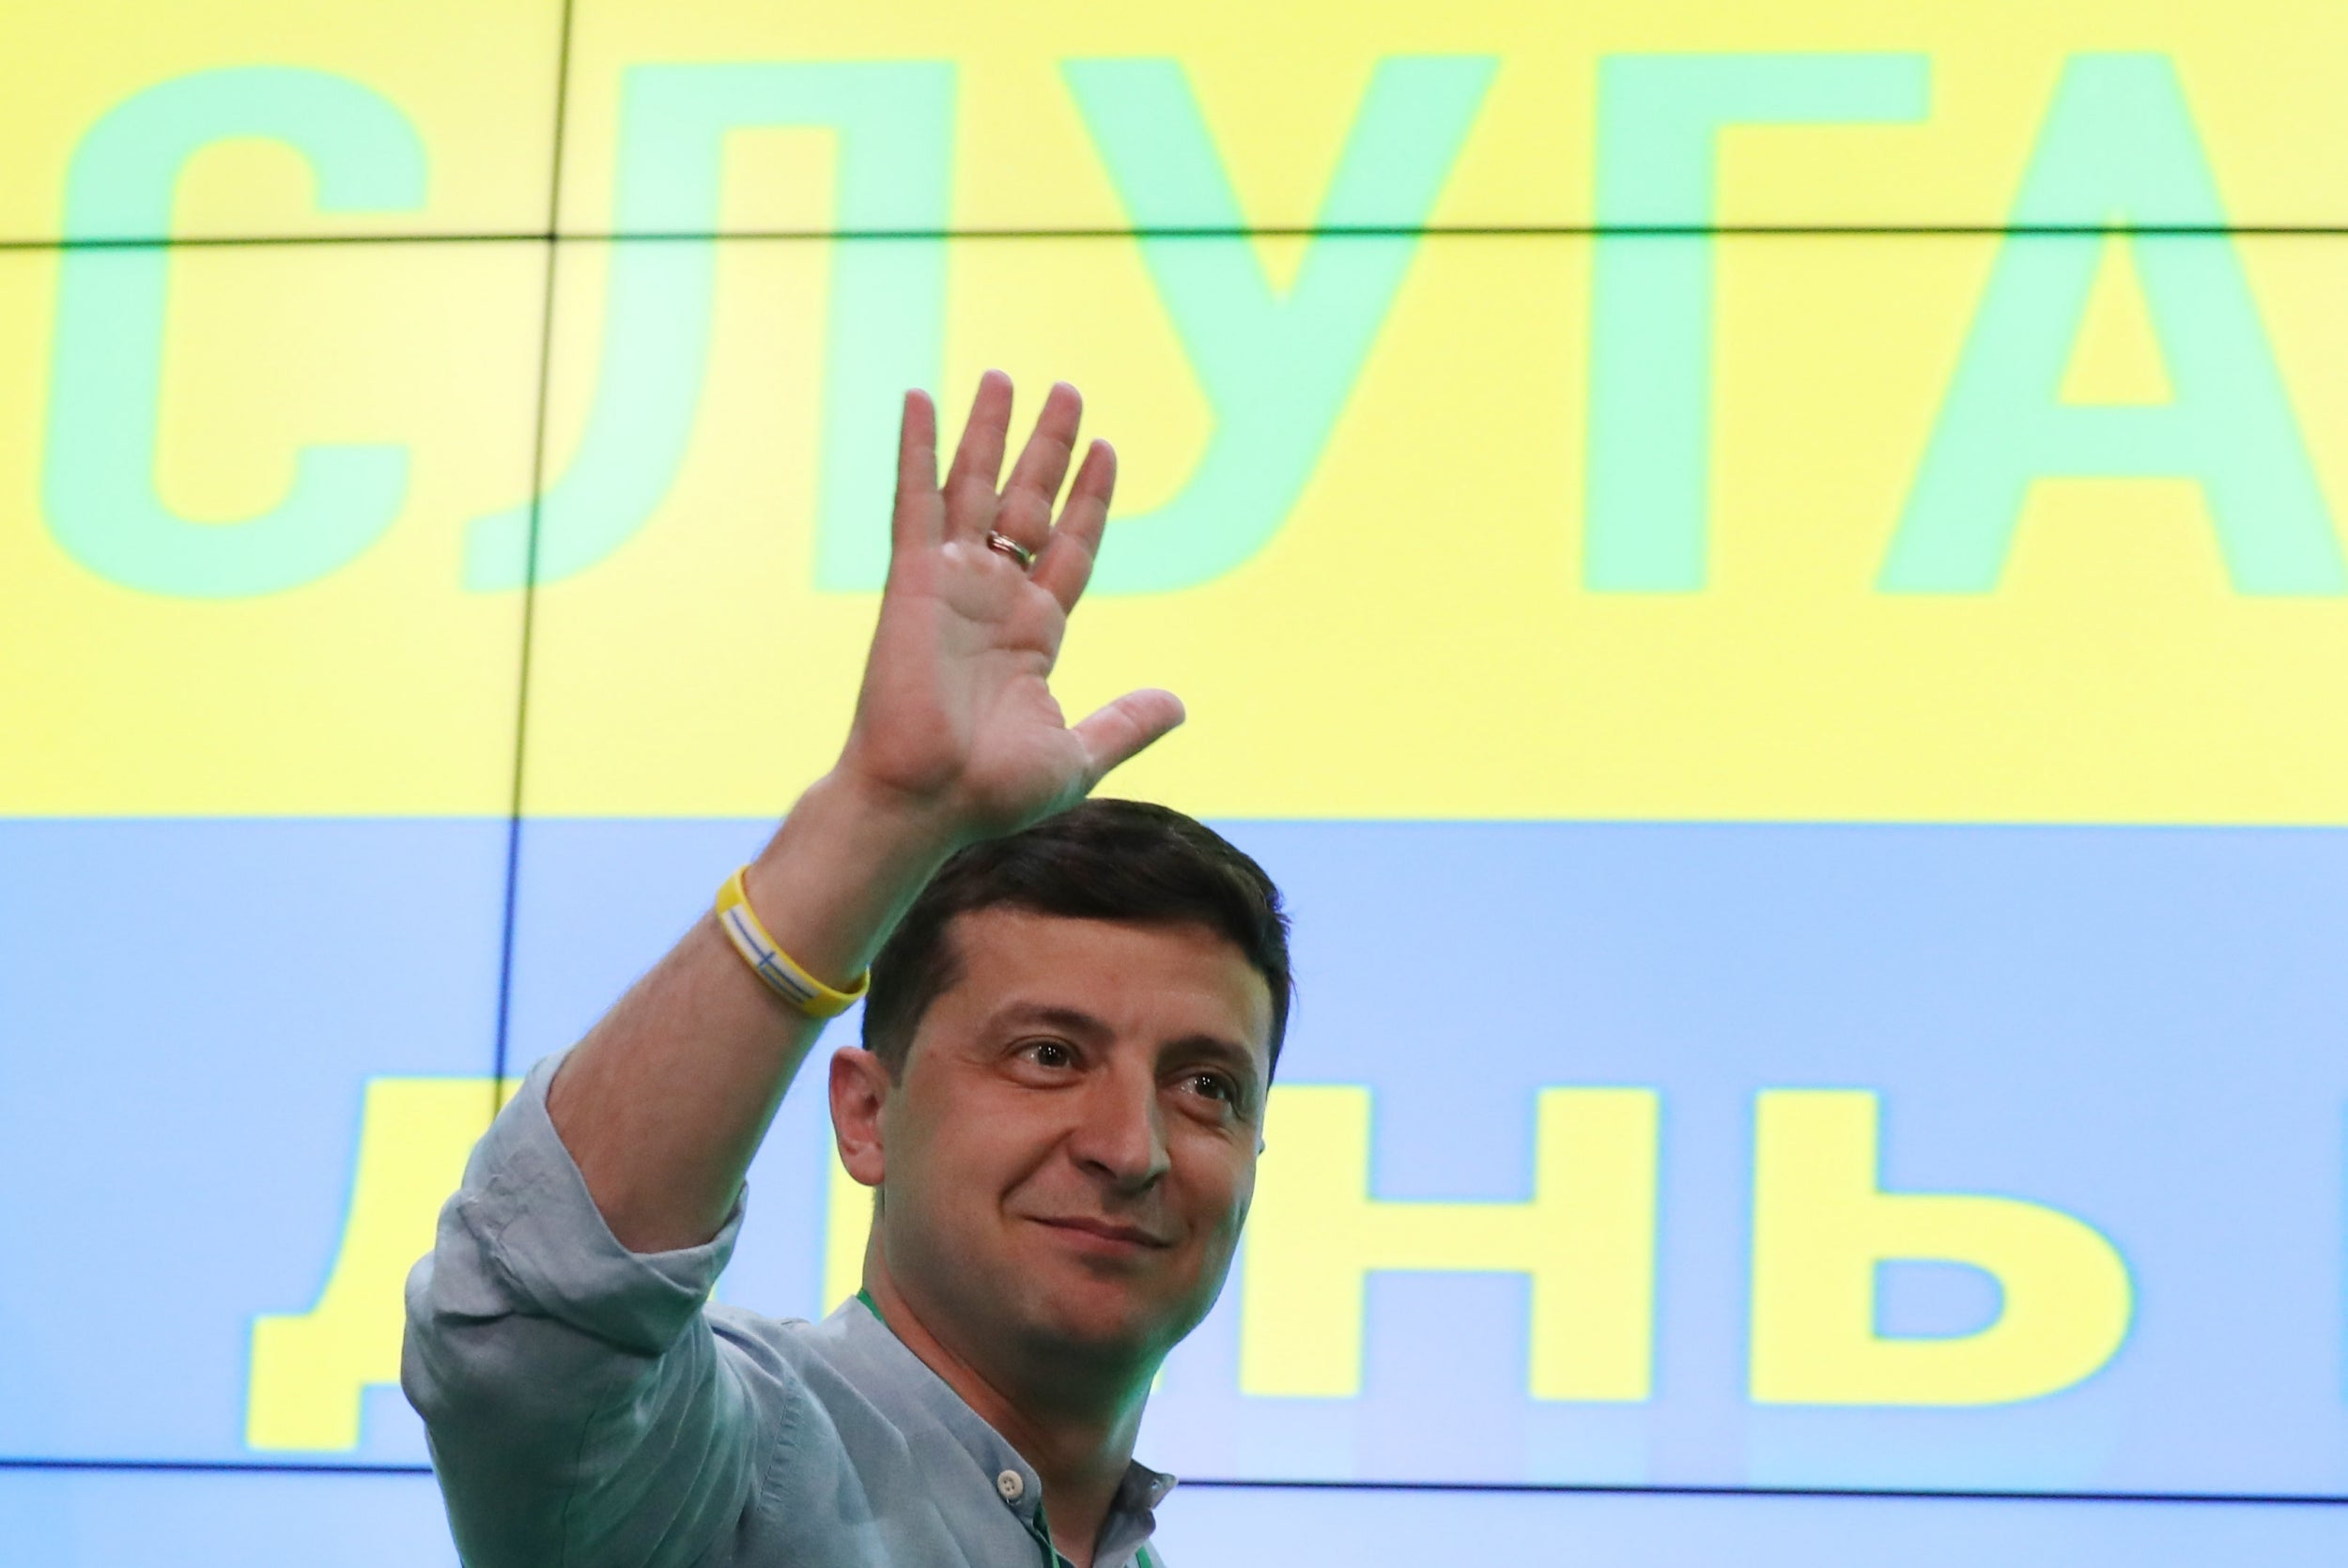 Ukraine - latest news, breaking stories and comment - The